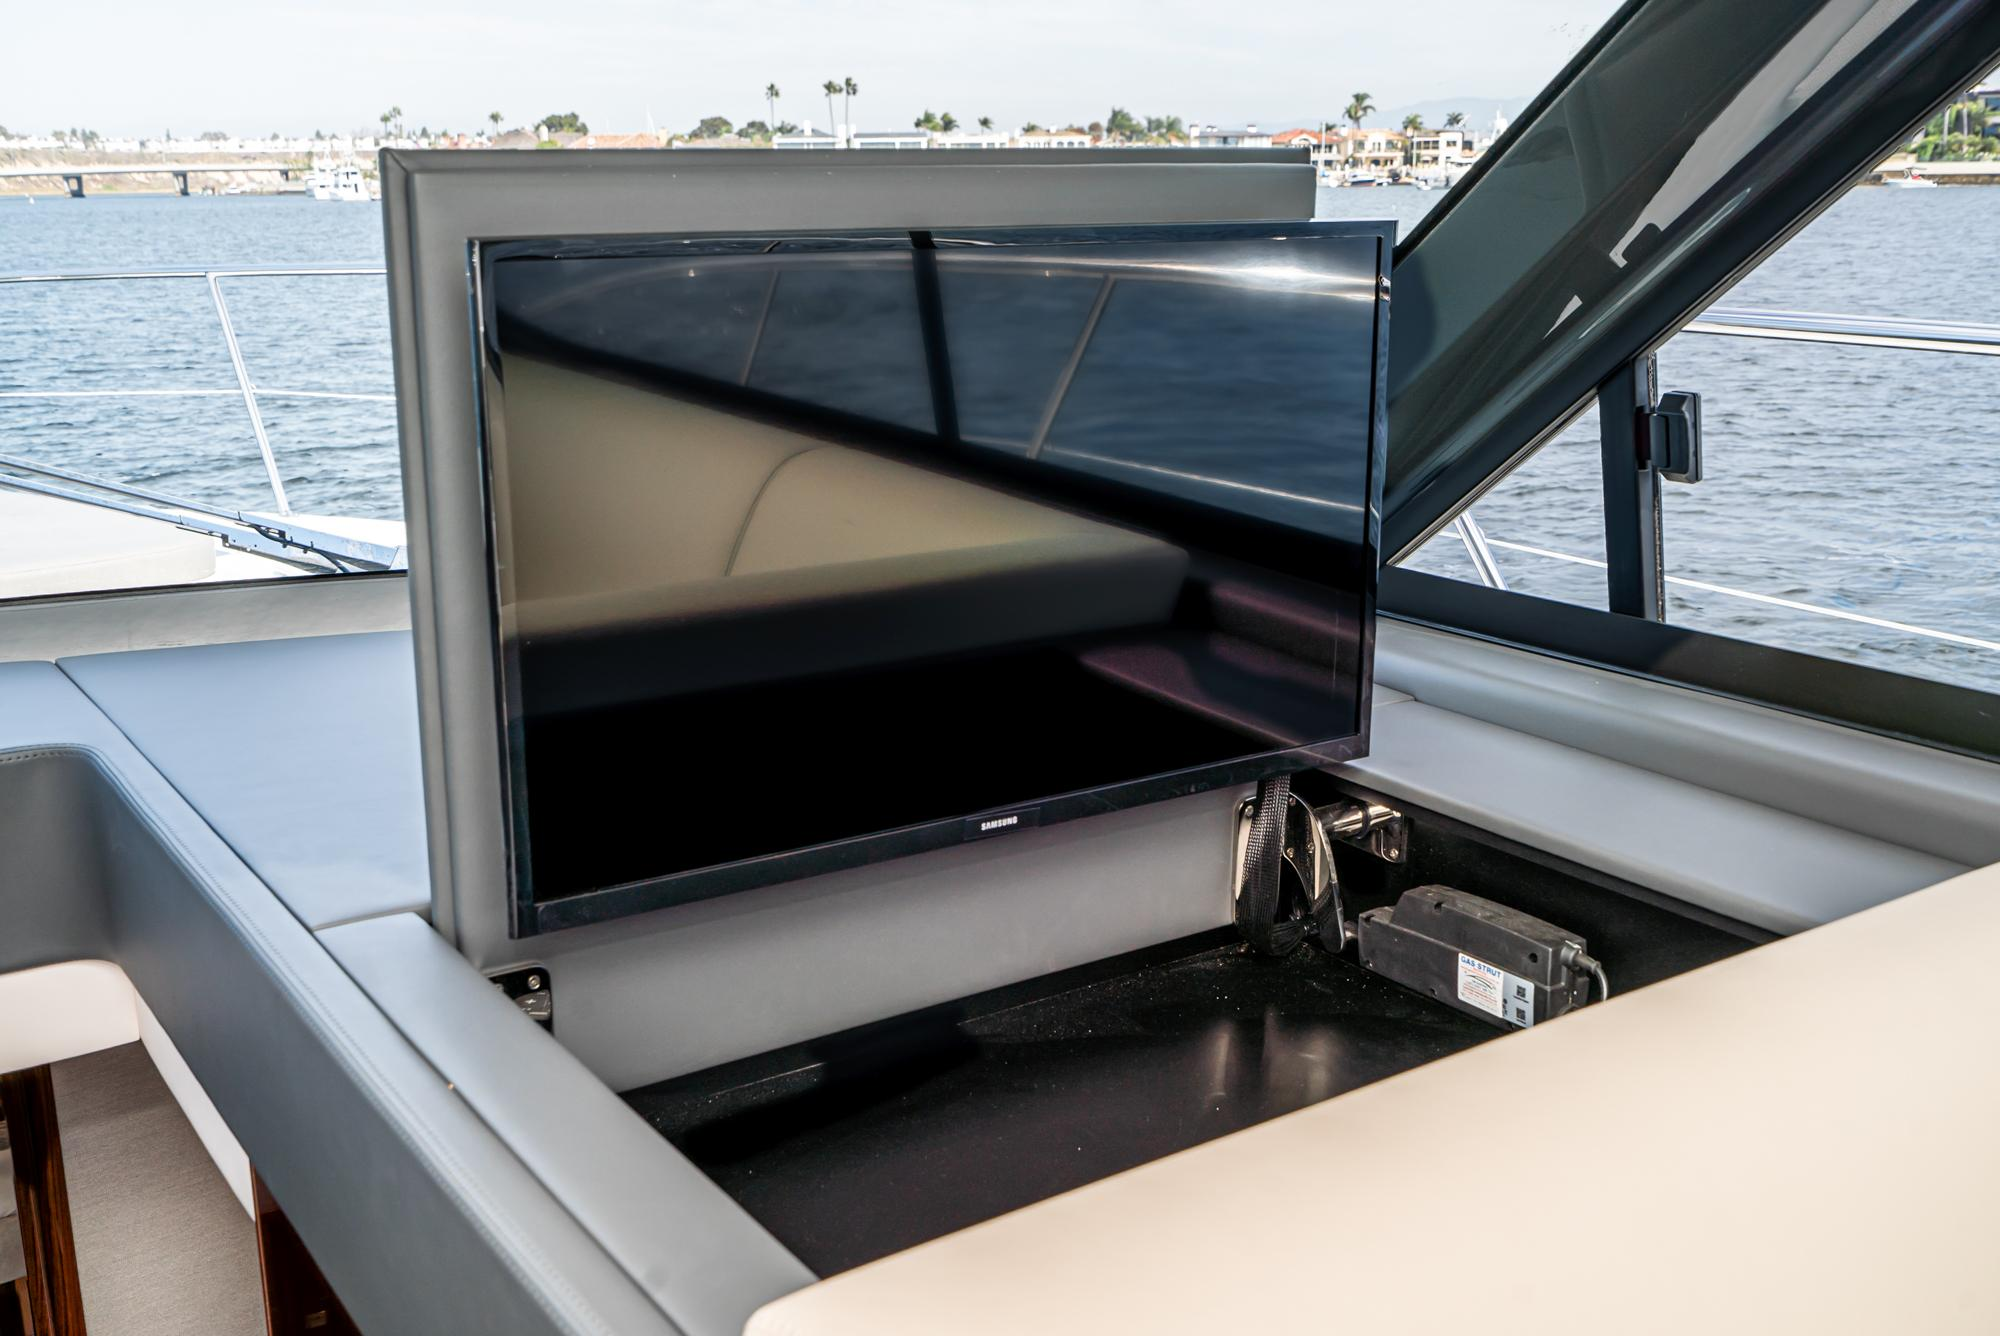 2021 Riviera 4800 Sport Yacht #R071 inventory image at Sun Country Coastal in Newport Beach